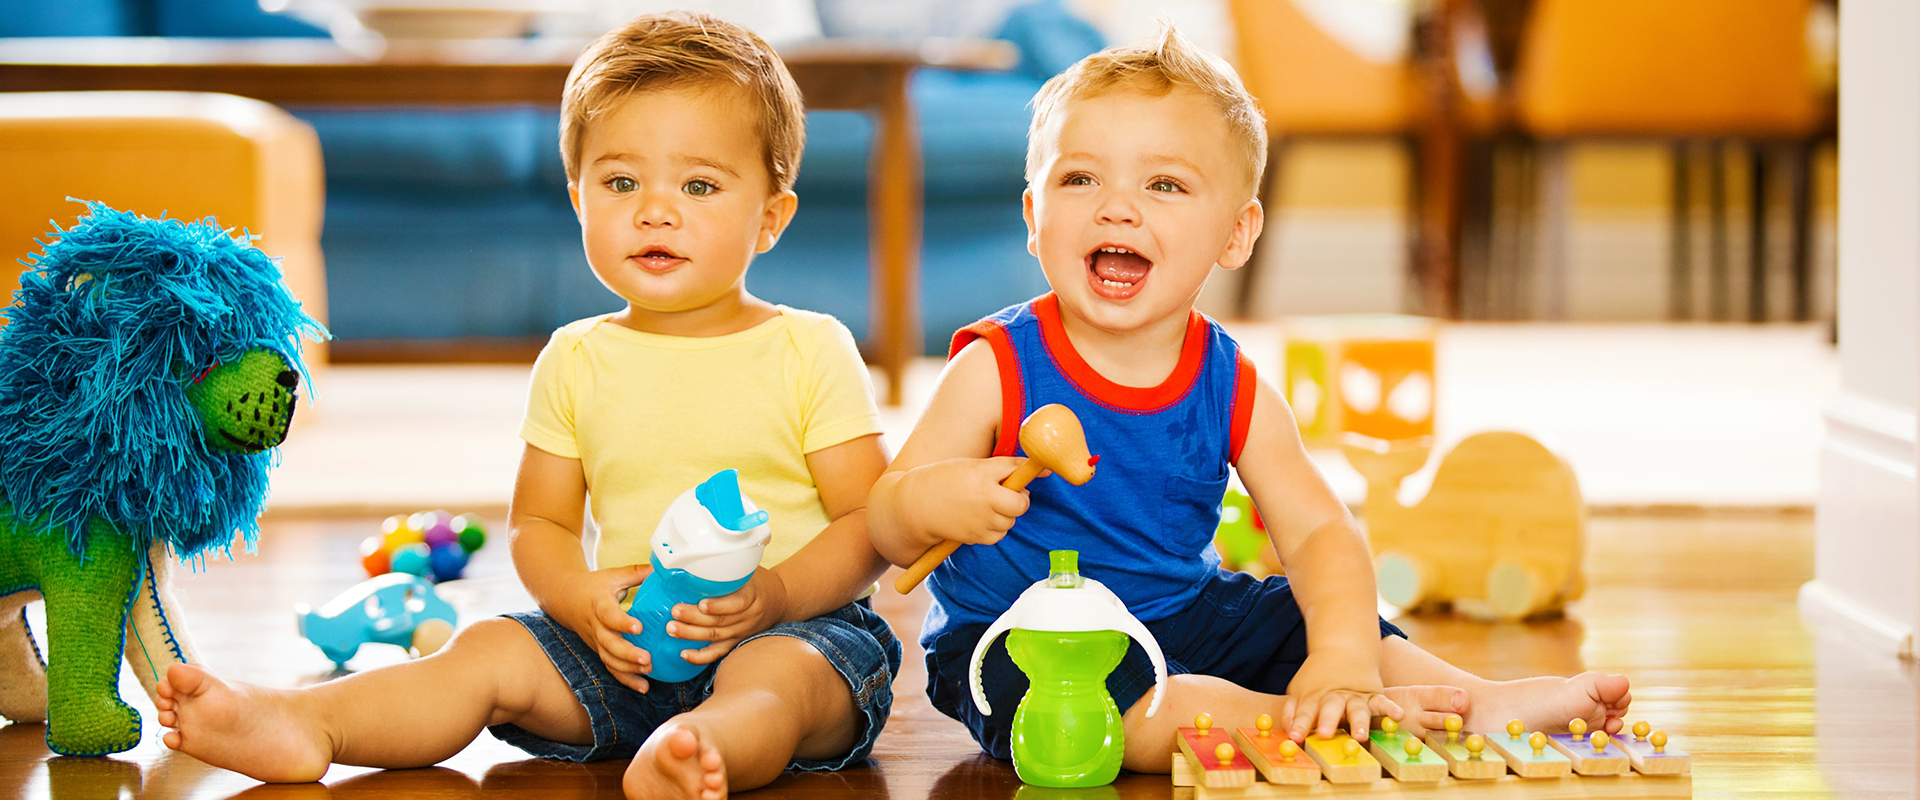 How to Find the Best Sippy Cup for Any Age